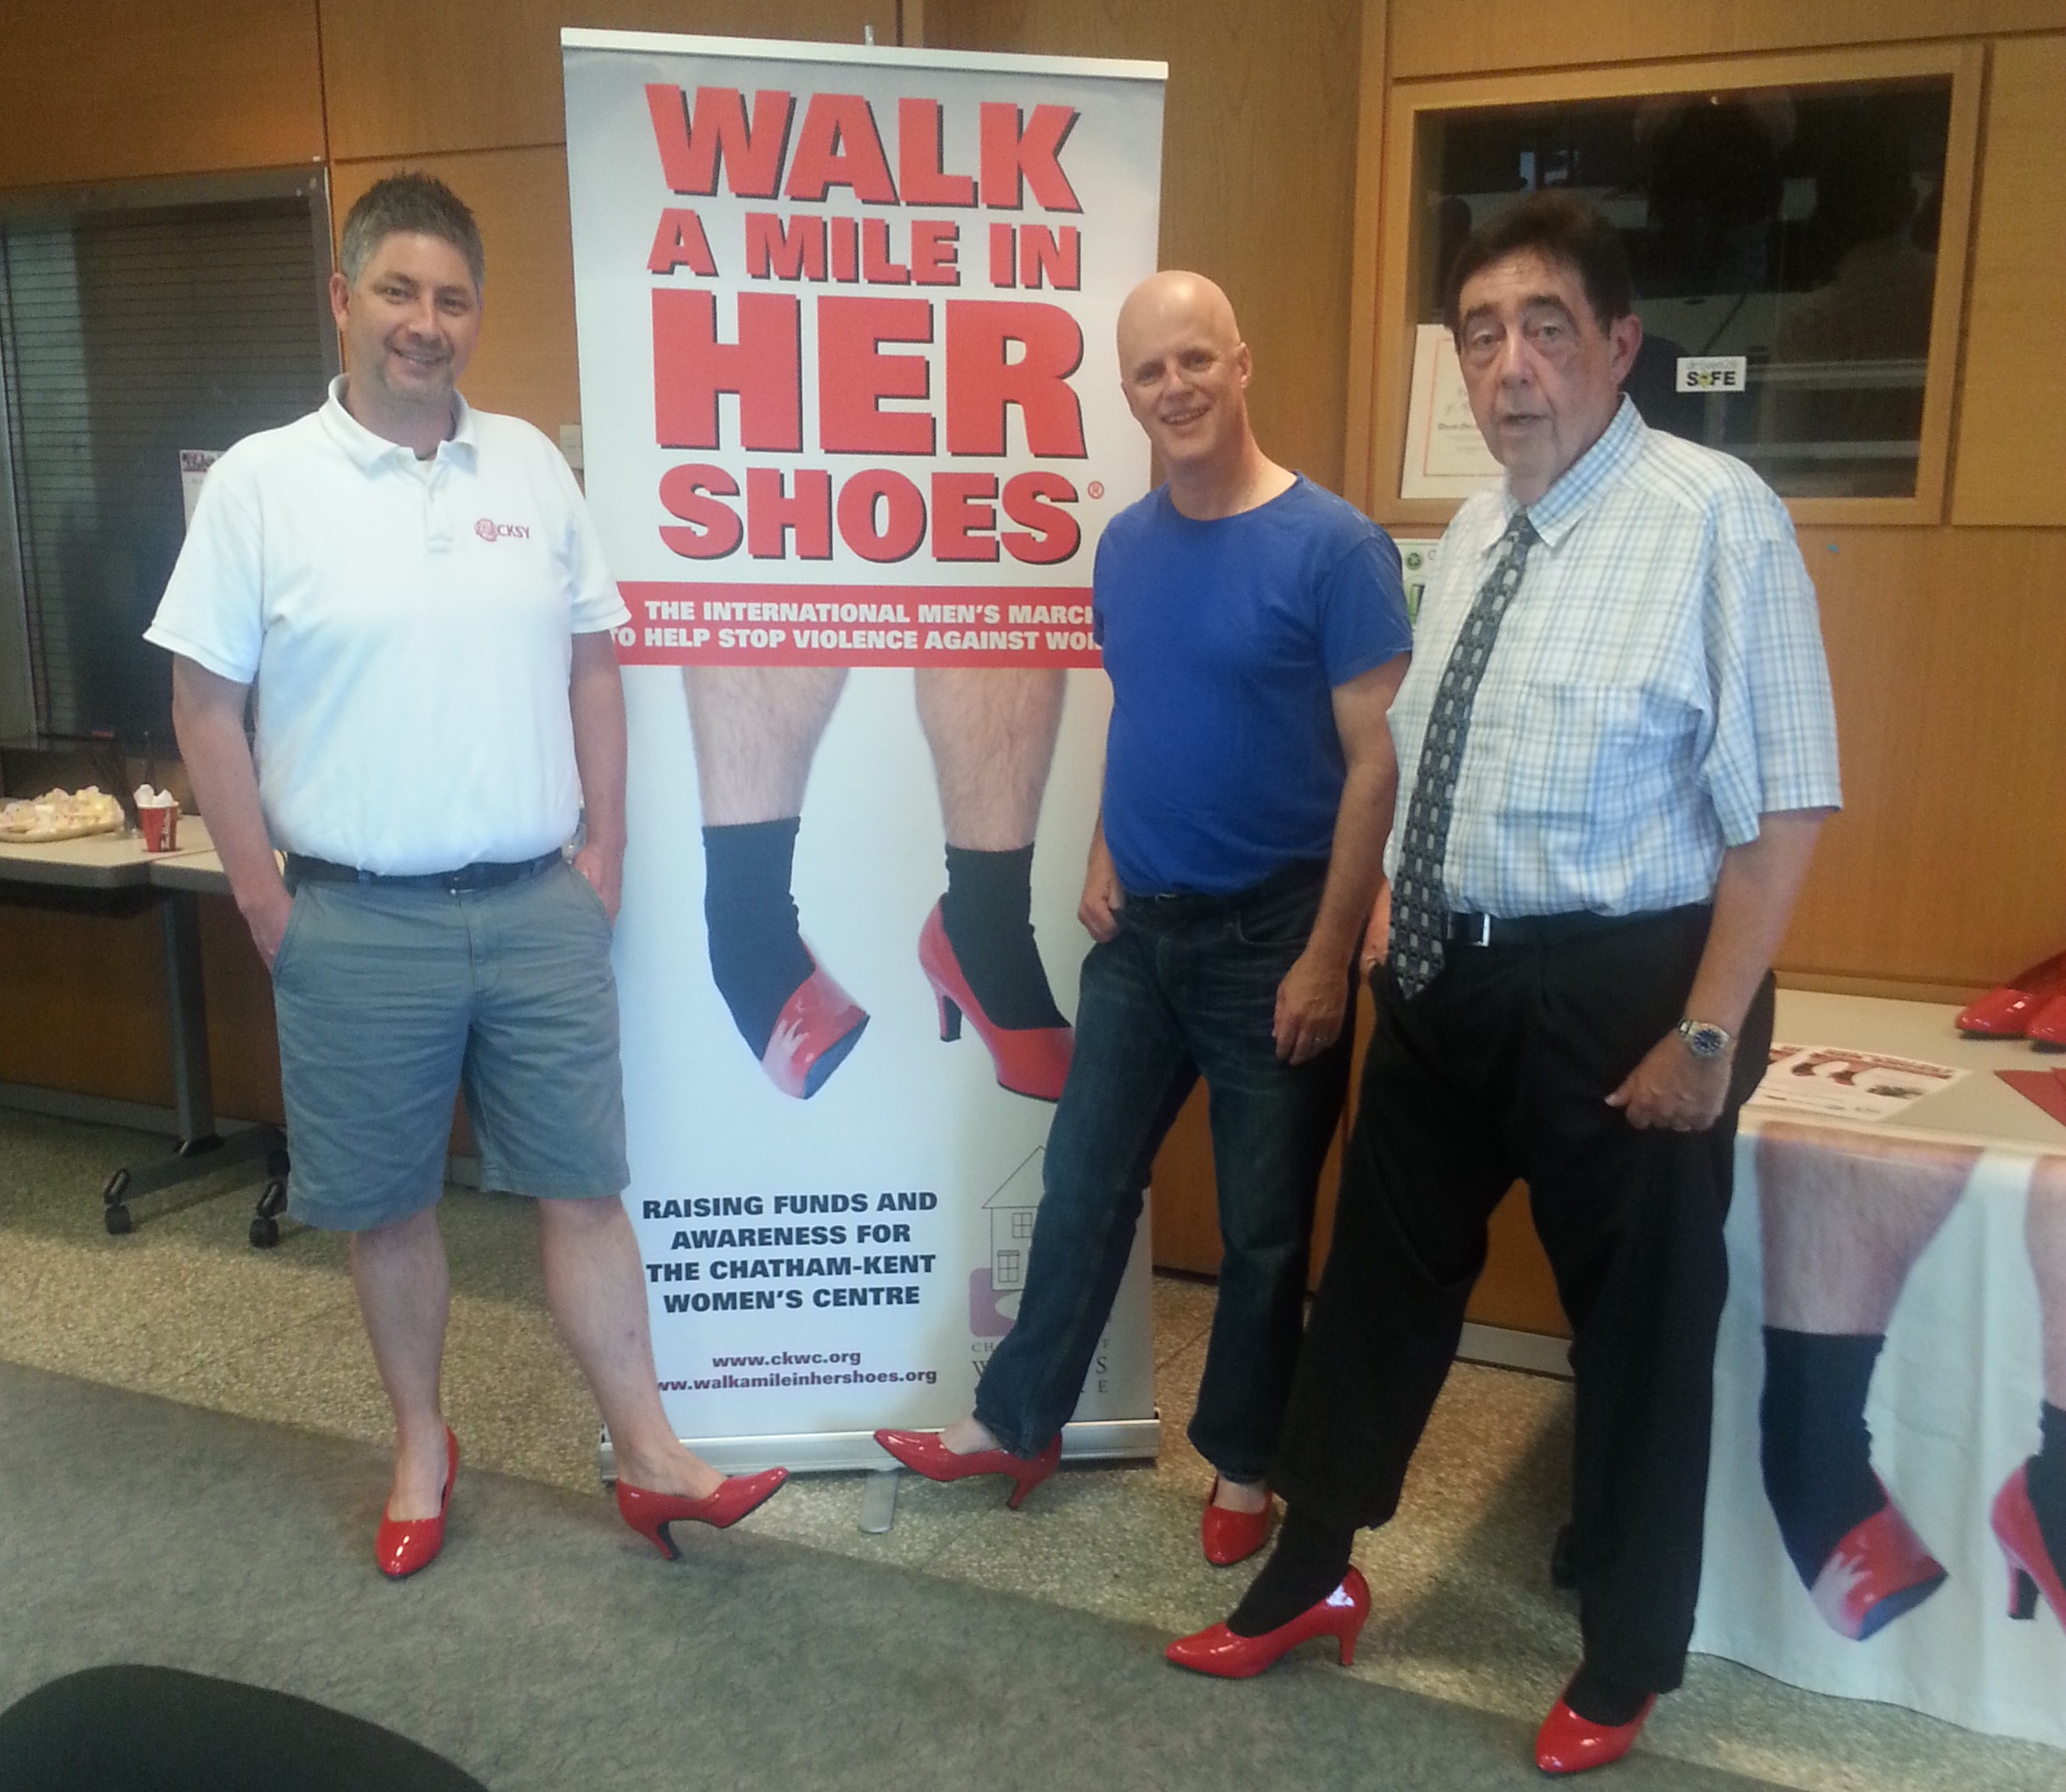 Chris McLeod of CKSY, Dave Palmer of CFCO & Women's Centre Executive Director Hal Bushey at the launch of the 2014 Walk a Mile in Her Shoes. (Photo courtesy of Dave Palmer)